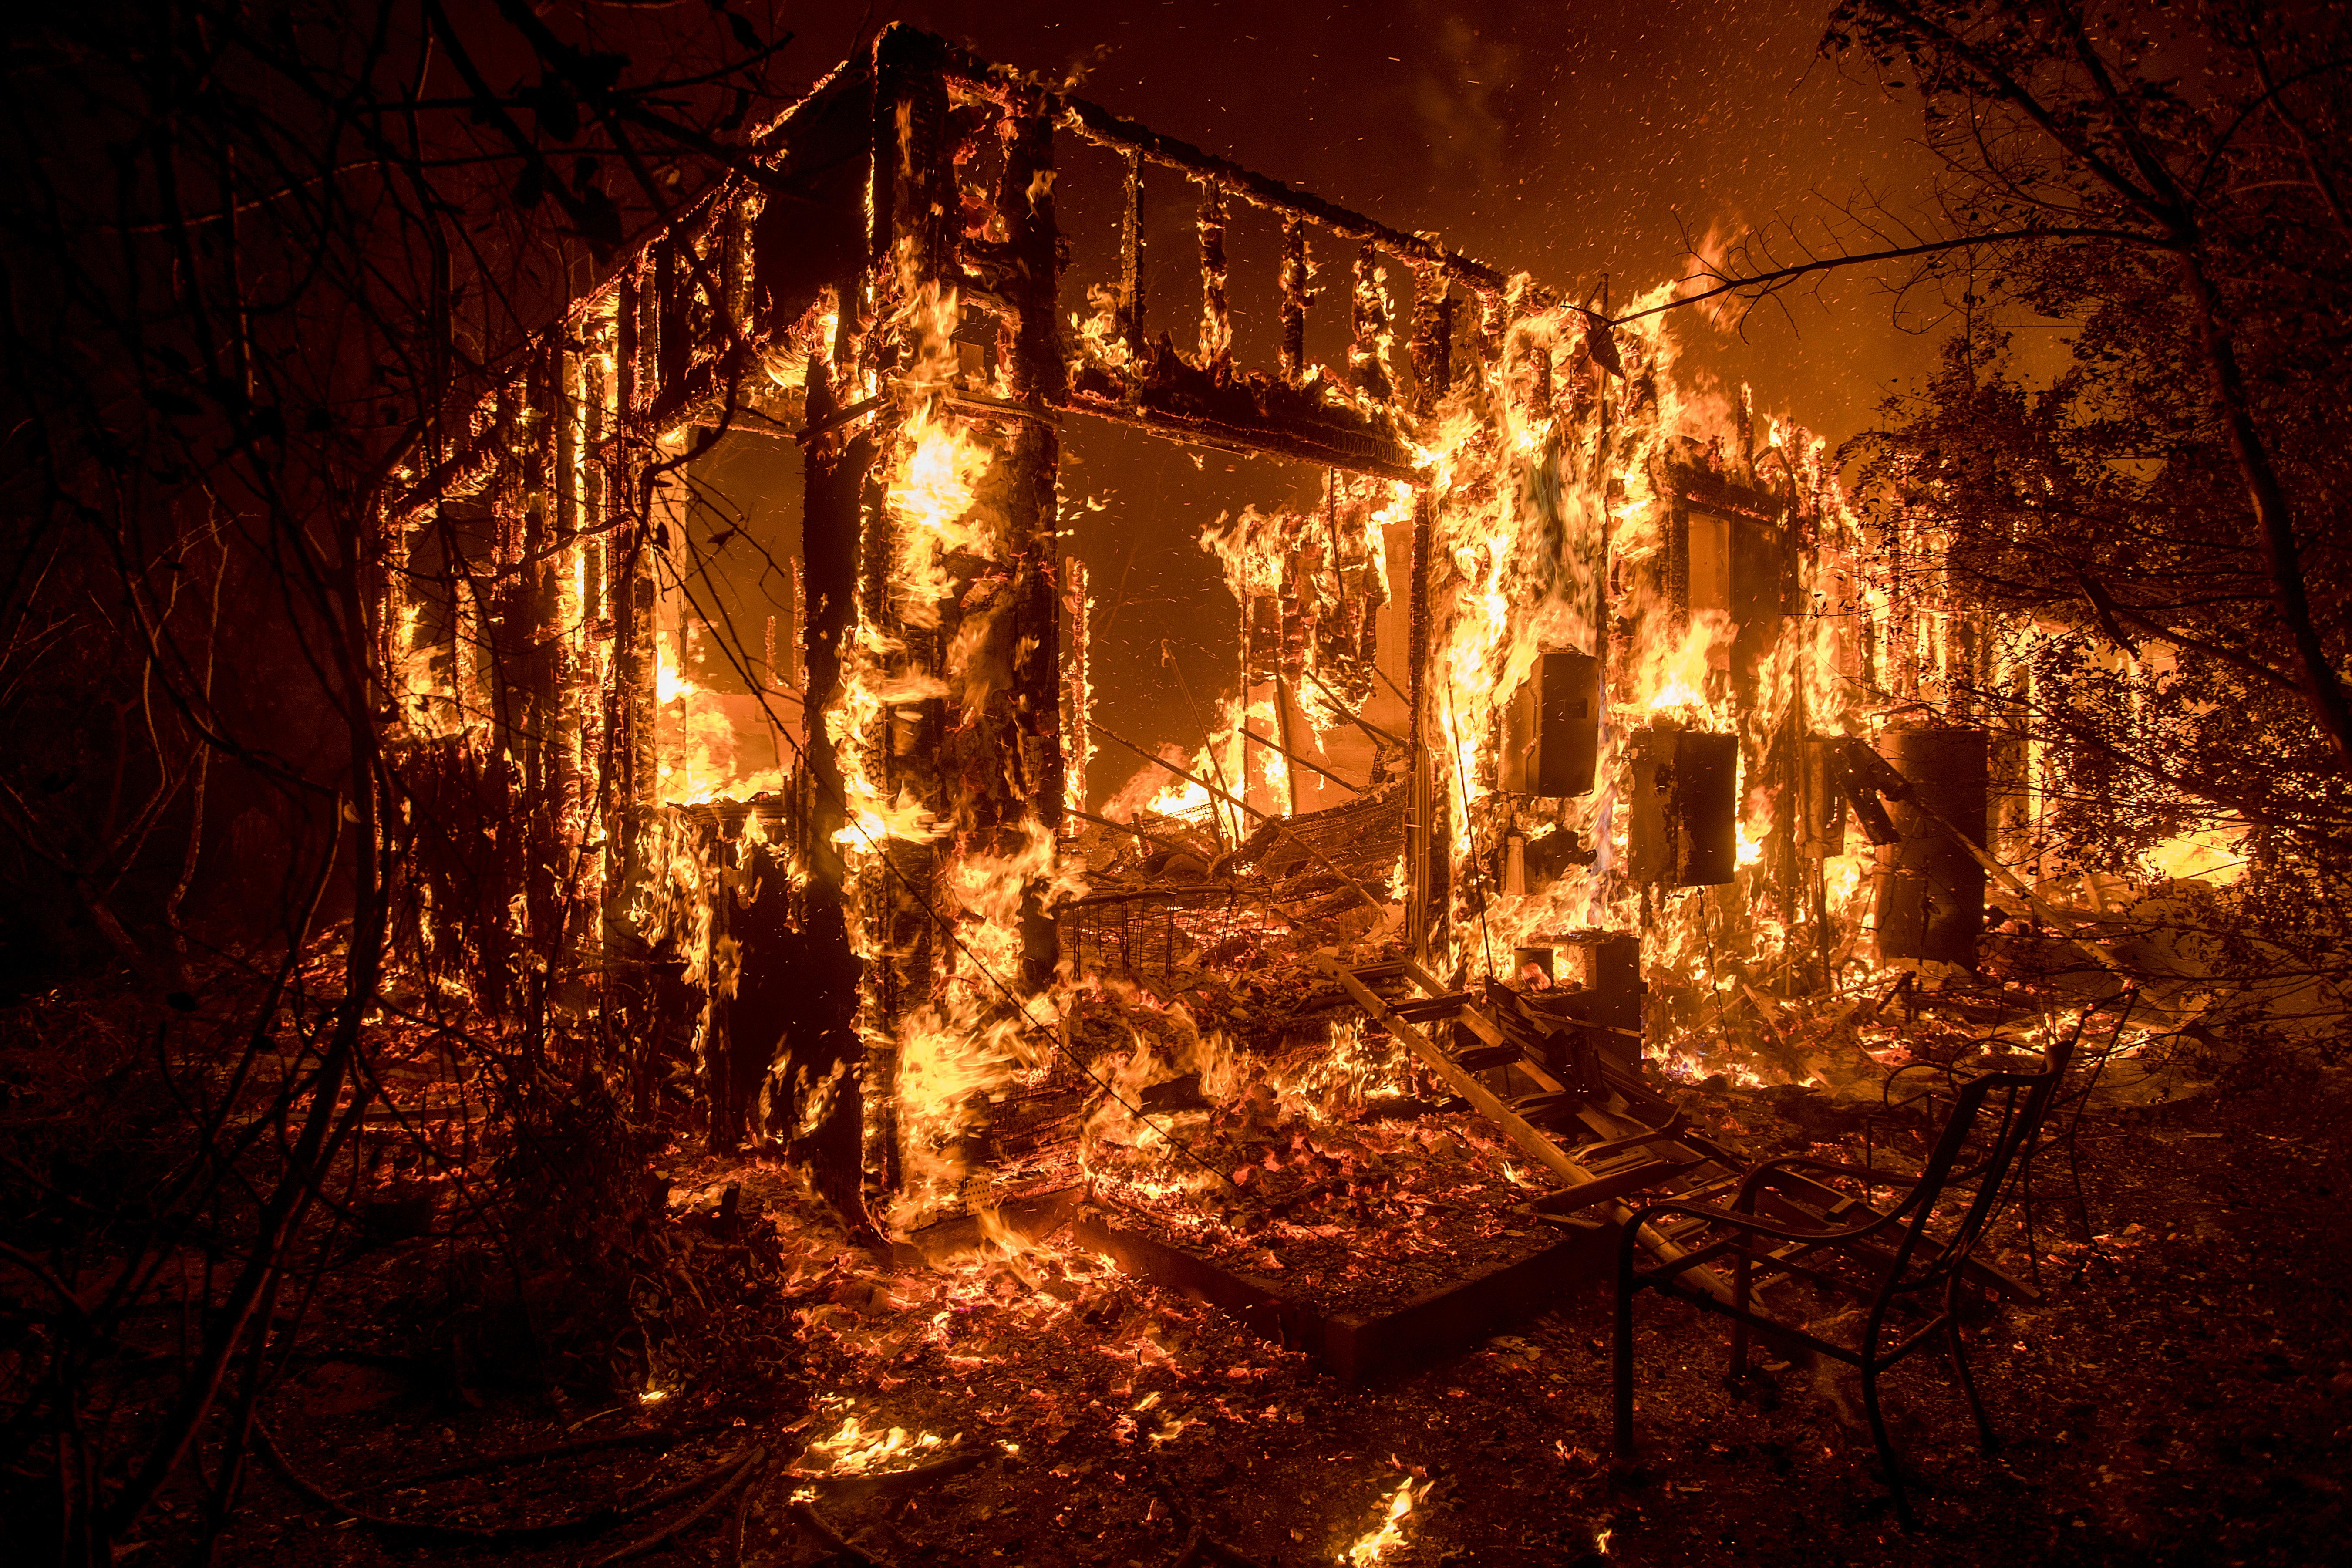 Flames consume a home as a wildfire burns in Ojai, Calif., on Thursday, Dec. 7, 2017. (AP Photo/Noah Berger)